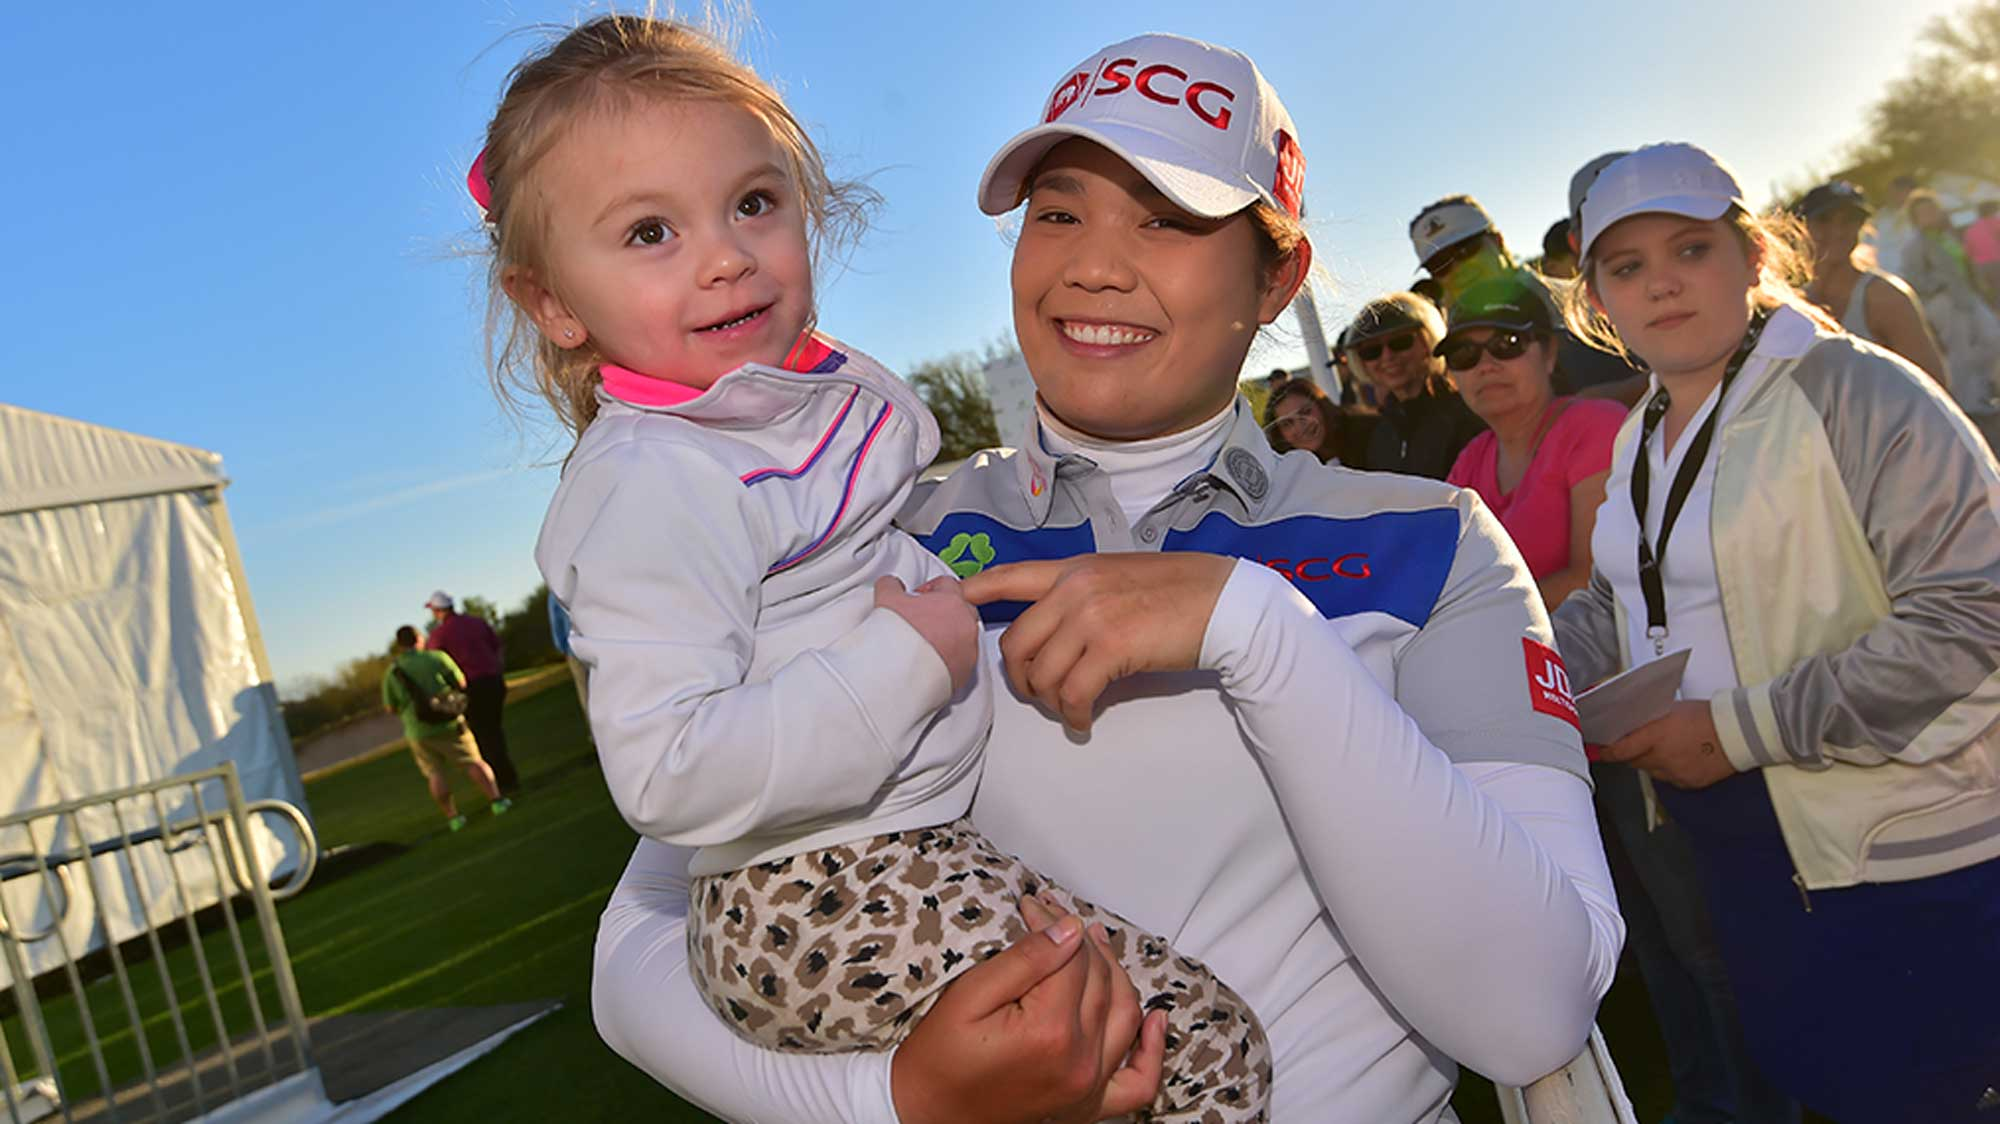 Ariya Jutanugarn and a Young Fan at Founders Cup